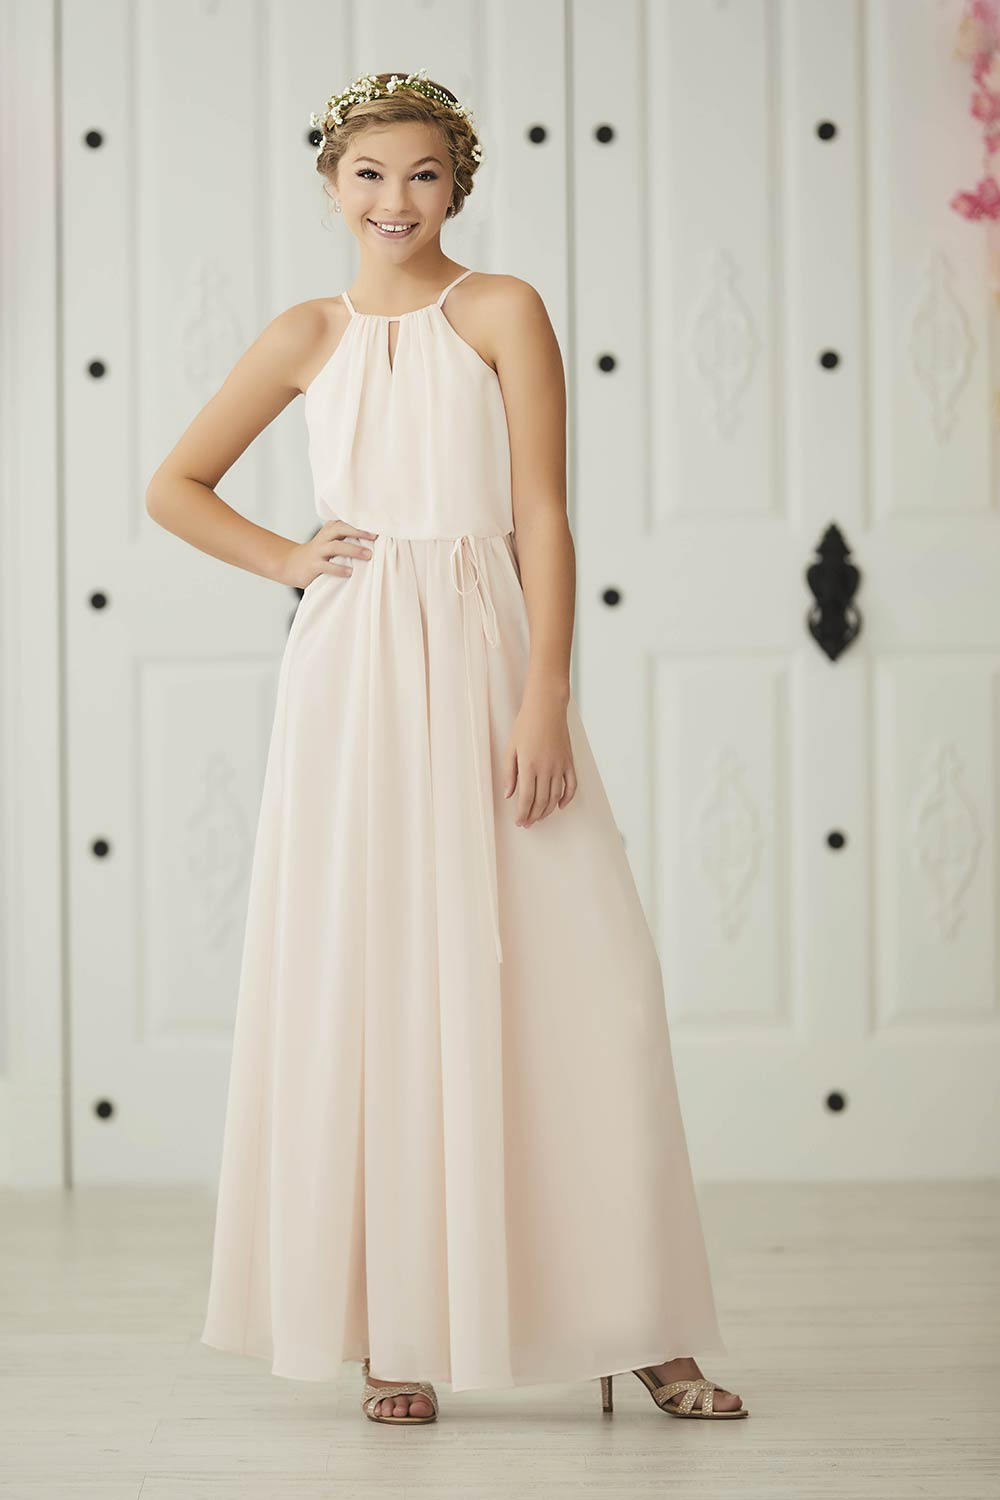 bridesmaid-dresses-jacquelin-bridals-canada-27407